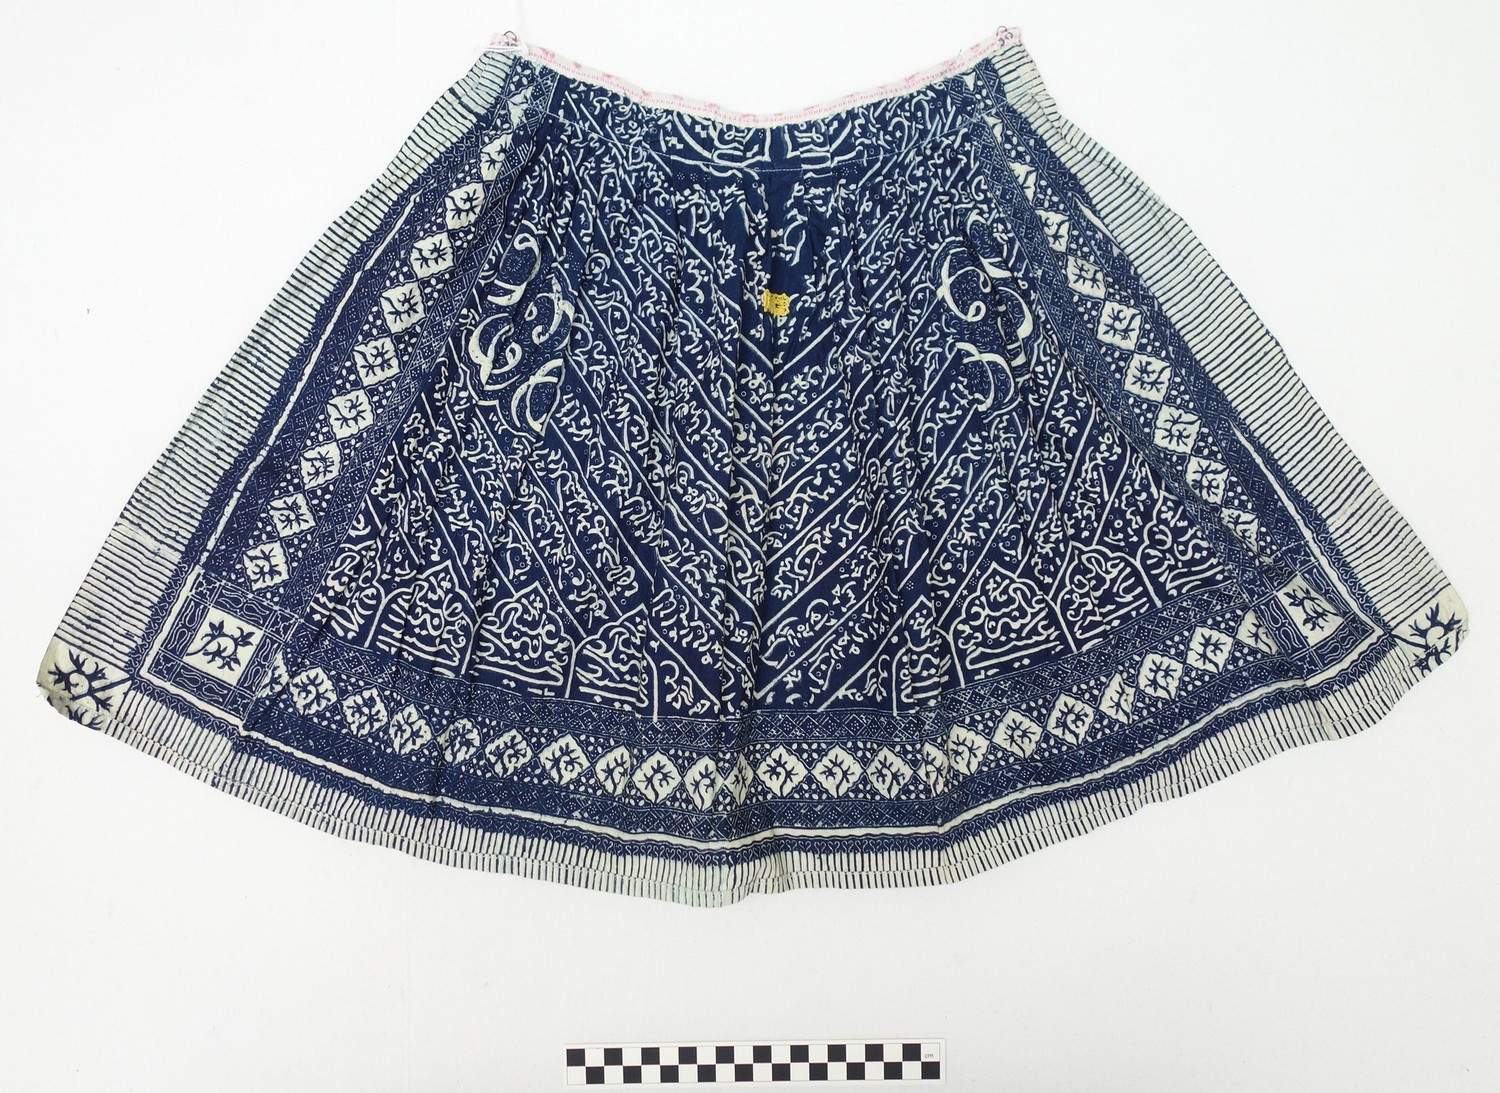 Boy's apron (locally called a boezel) from the Dutch island of Marken, made from a cotton, indigo resist-dyed Indonesian batik textile with Arabic (style) script, early 20th century (TRC 2009.0048).